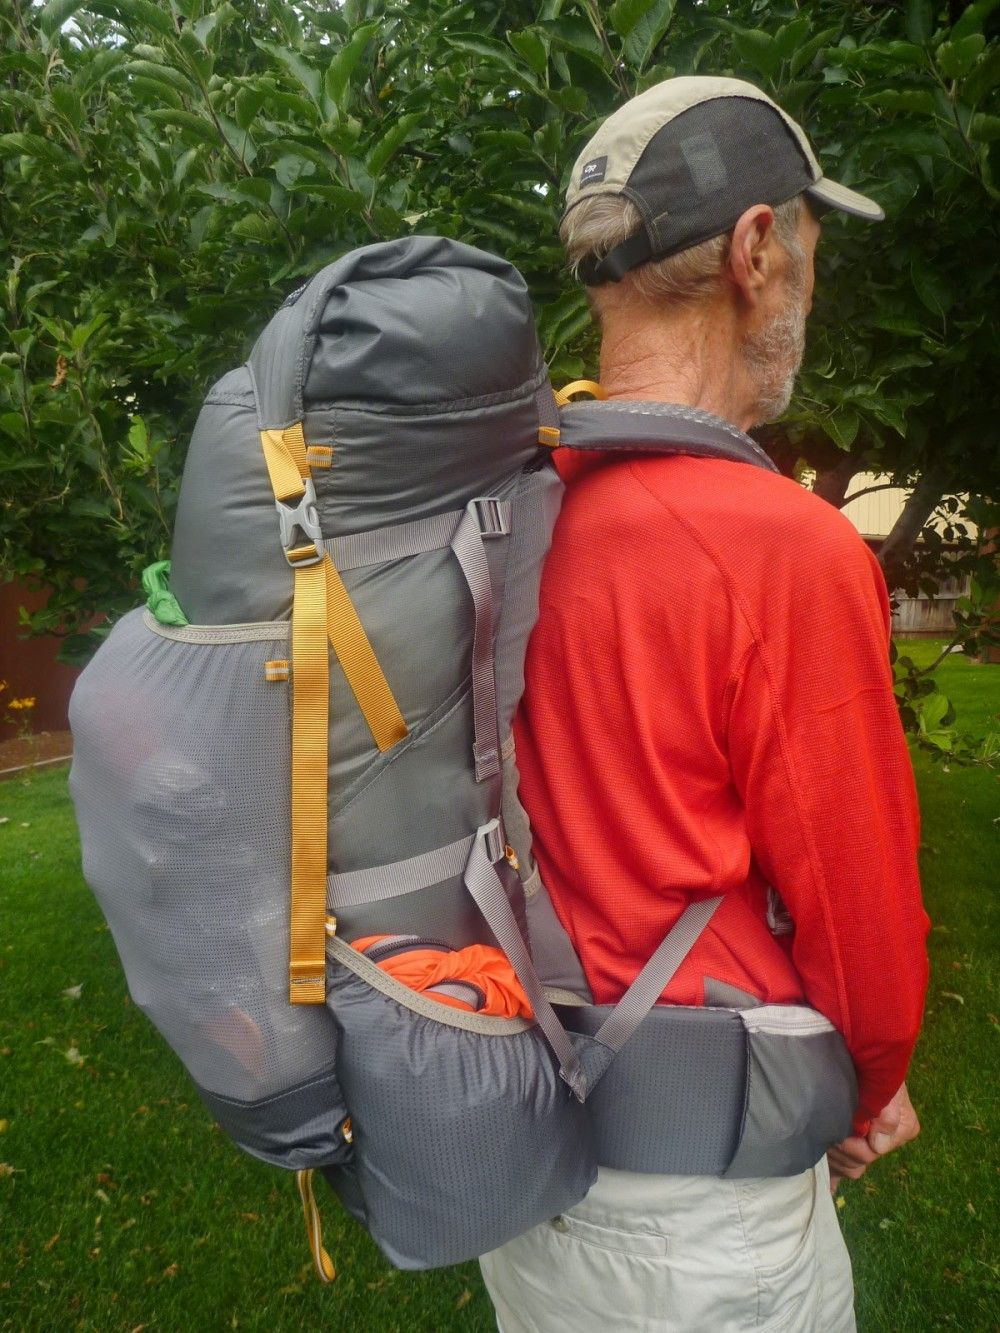 Jerry chair backpacking - Backpacking Trips